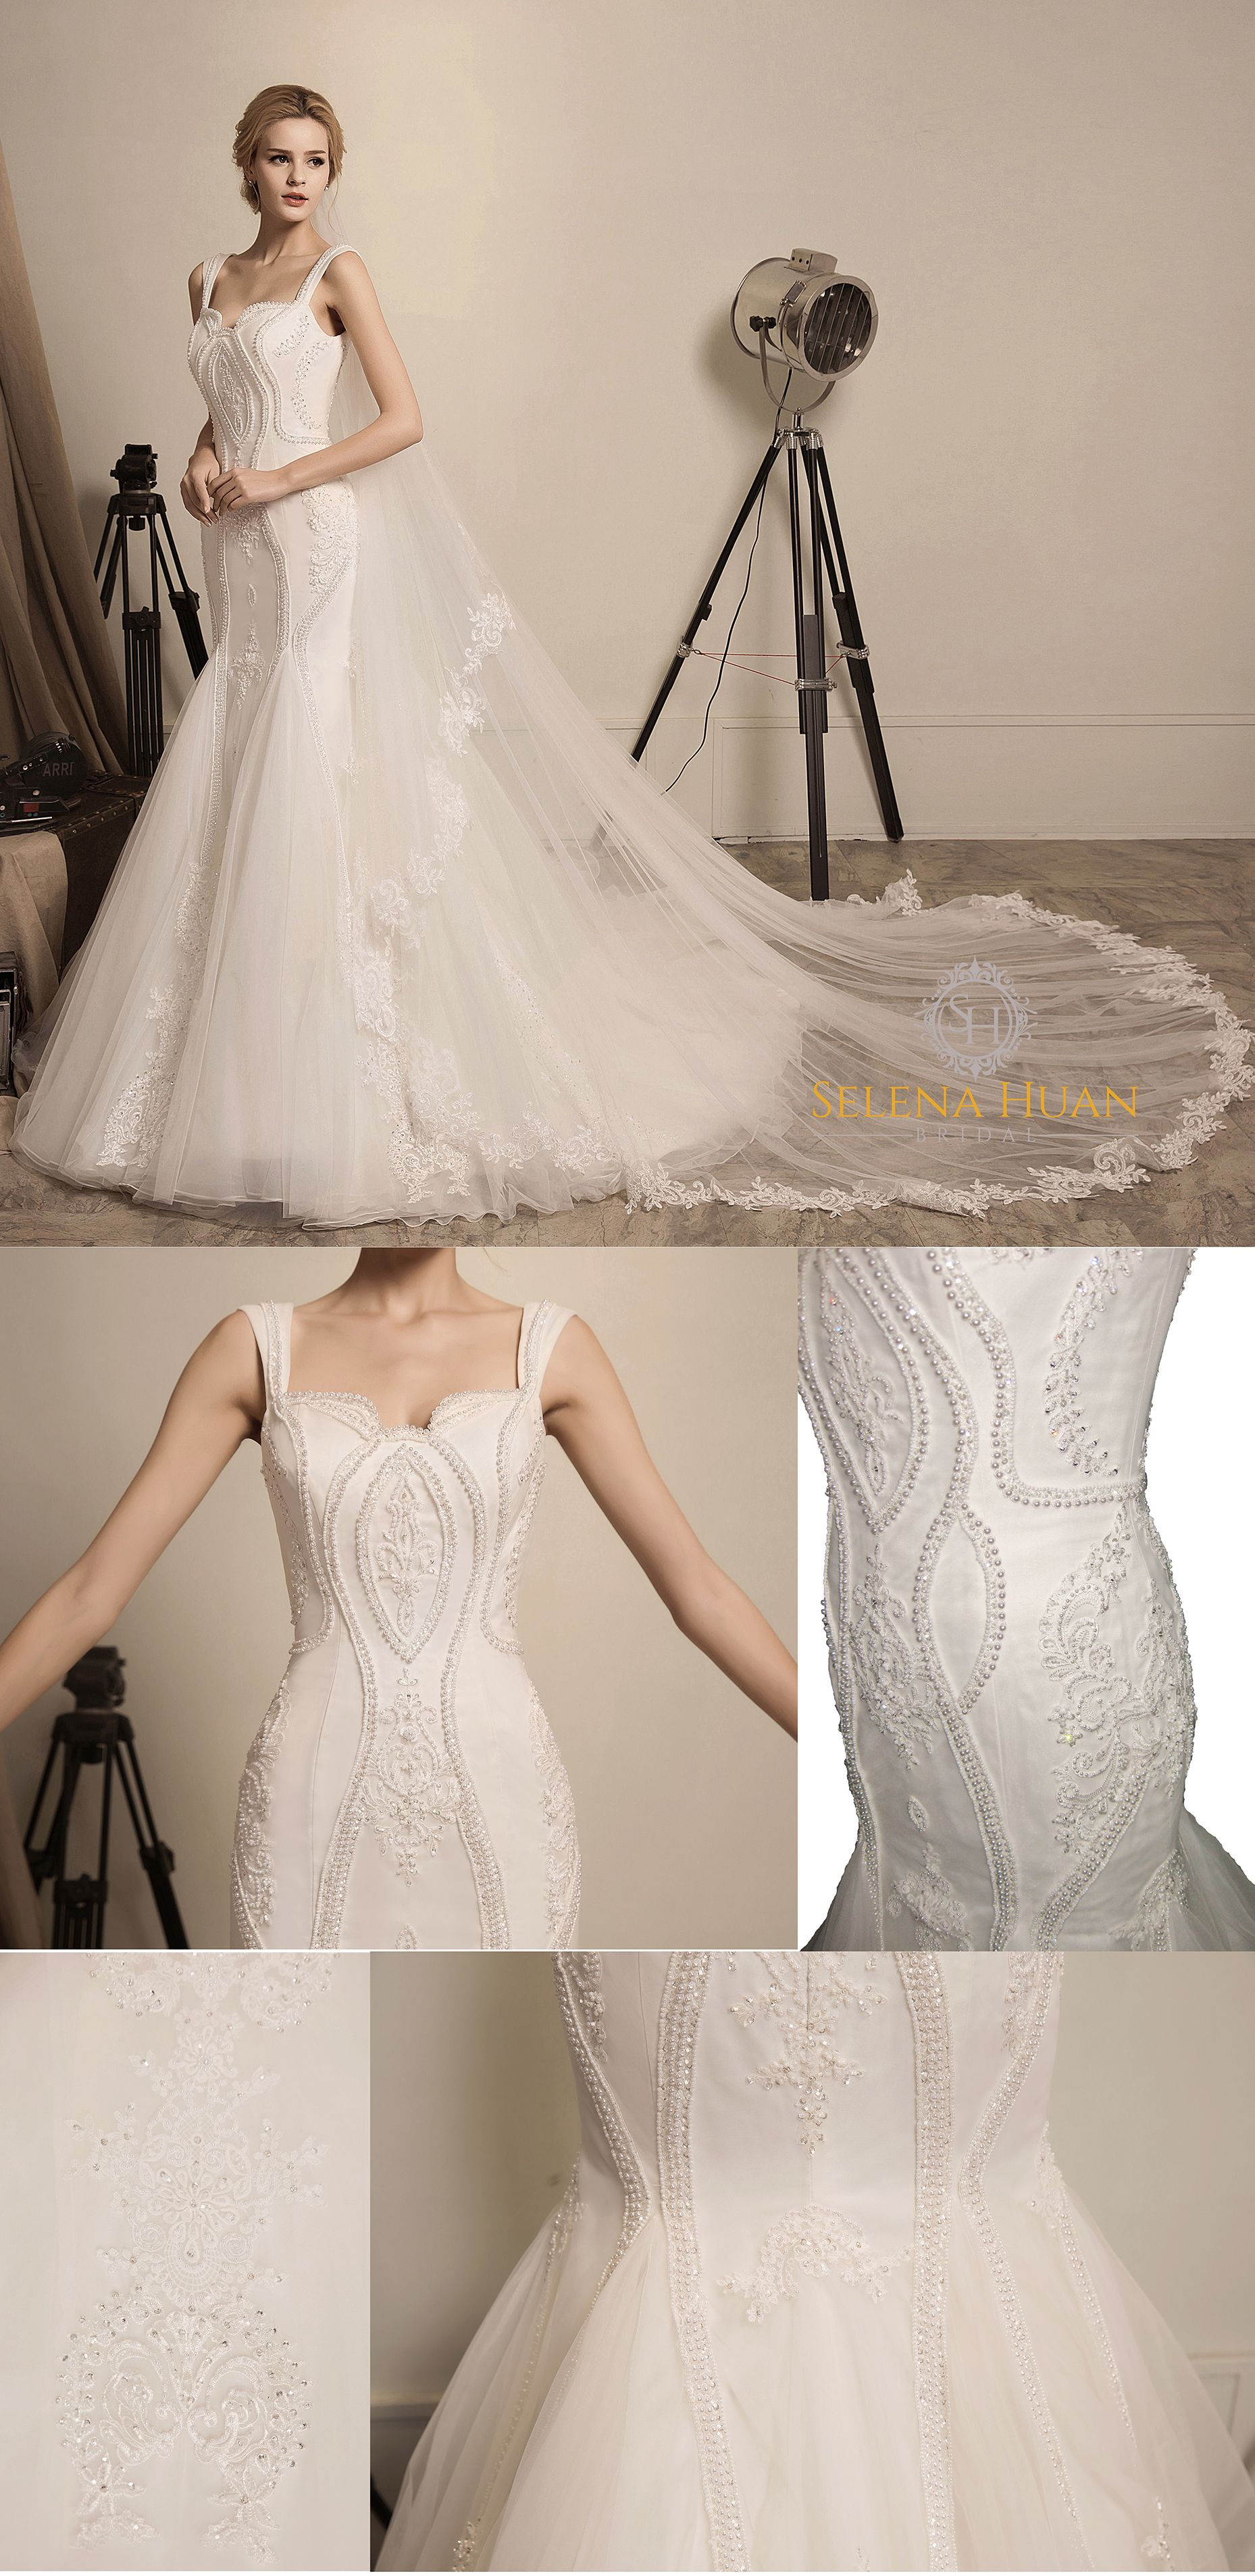 ffed8aed1441 This dress is fully-embroidered with elegant ivory lace beaded with  iridescent sequins and pearls. Its unique U-shape neckline and hollowed  lower back ...